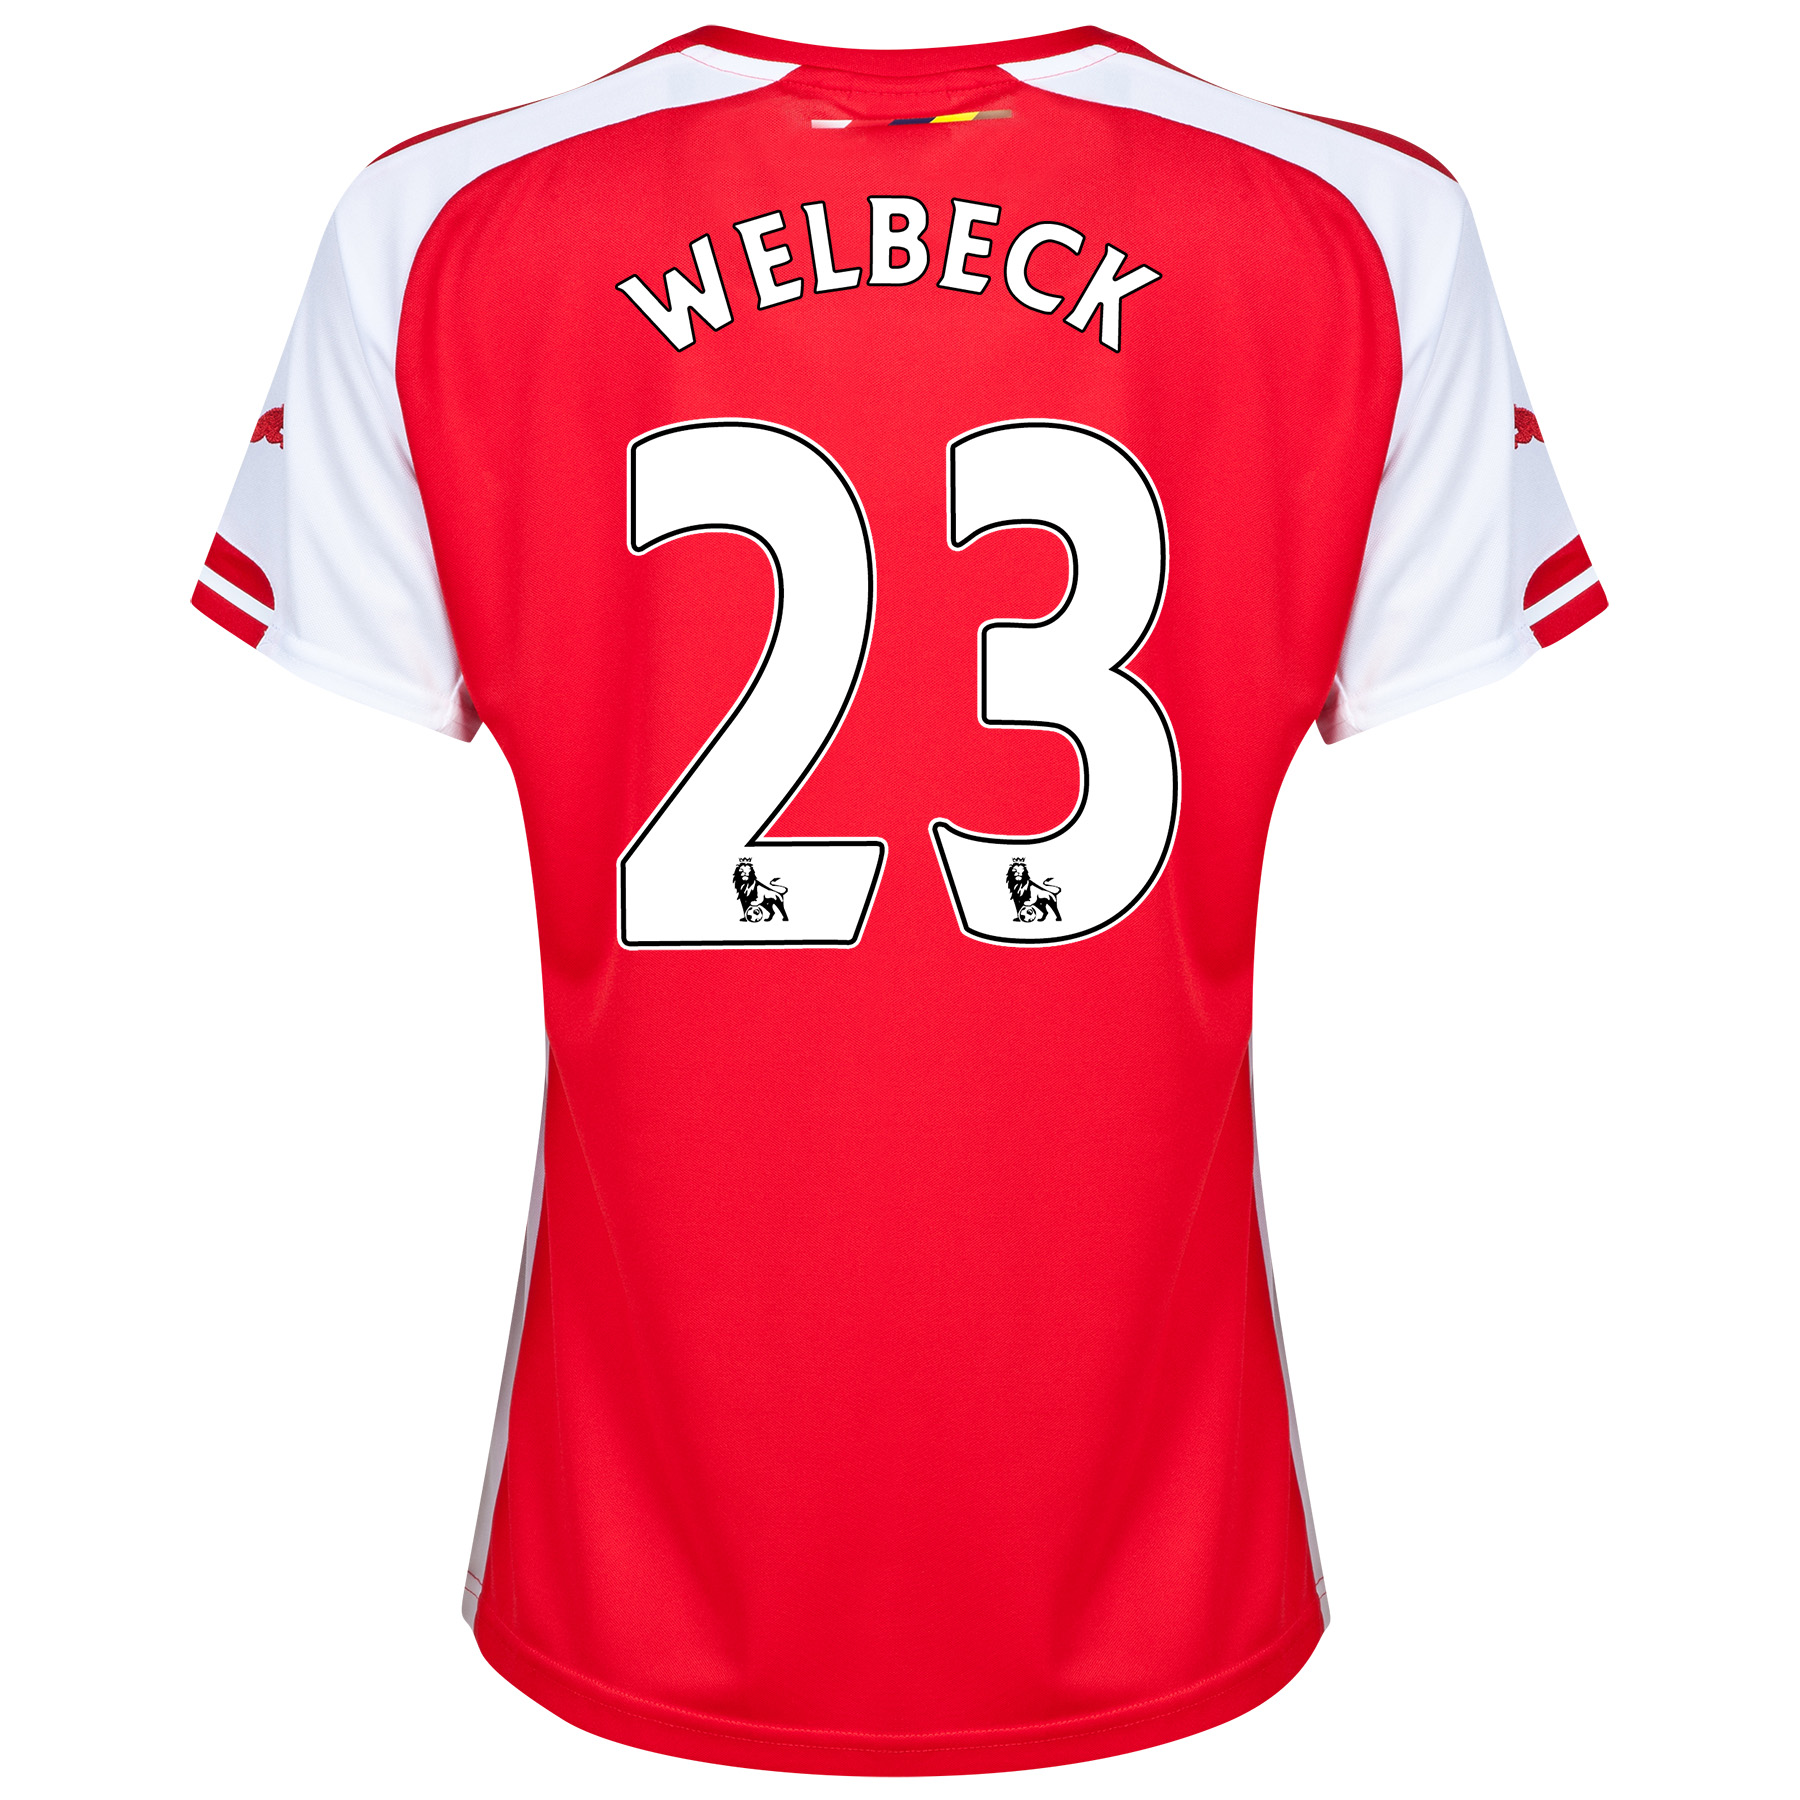 Arsenal Home Shirt 2014/15 - Womens with Welbeck 23 printing